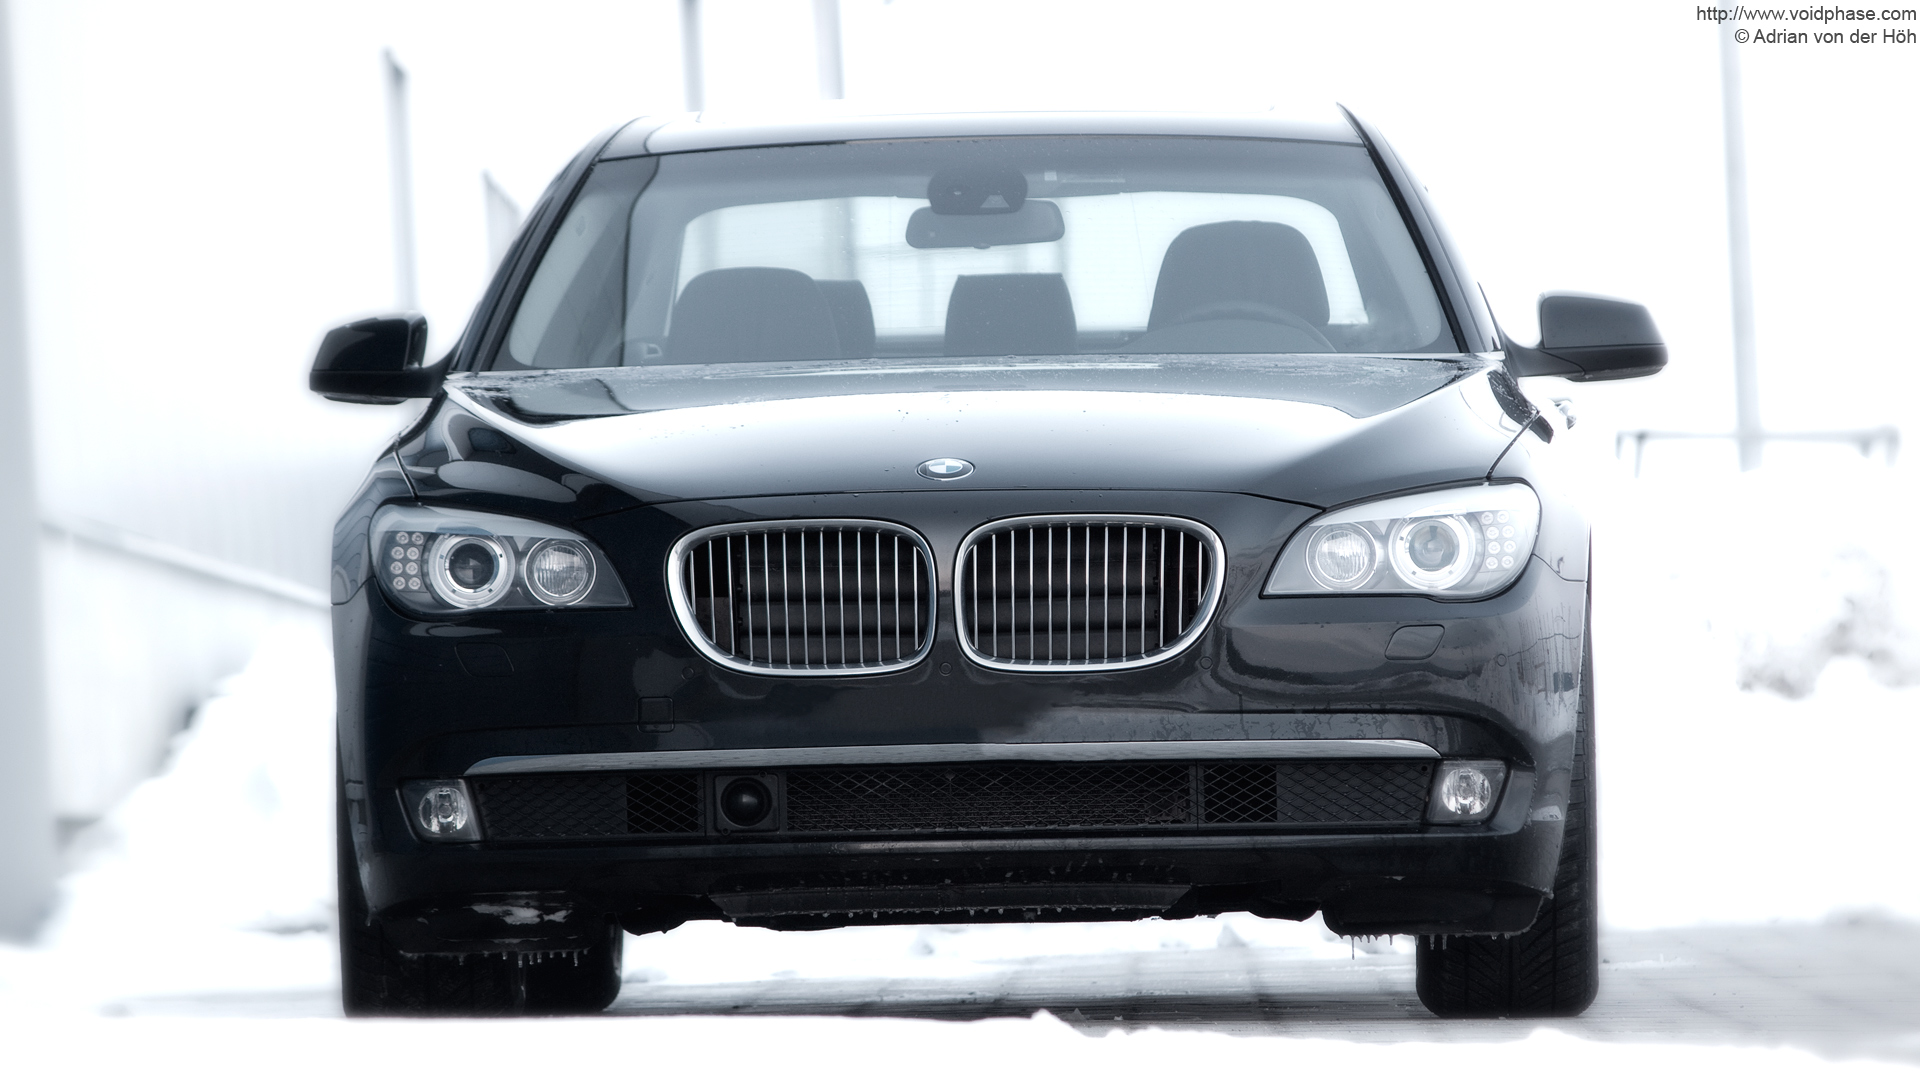 Black BMW 7 Series 720d Icequeen